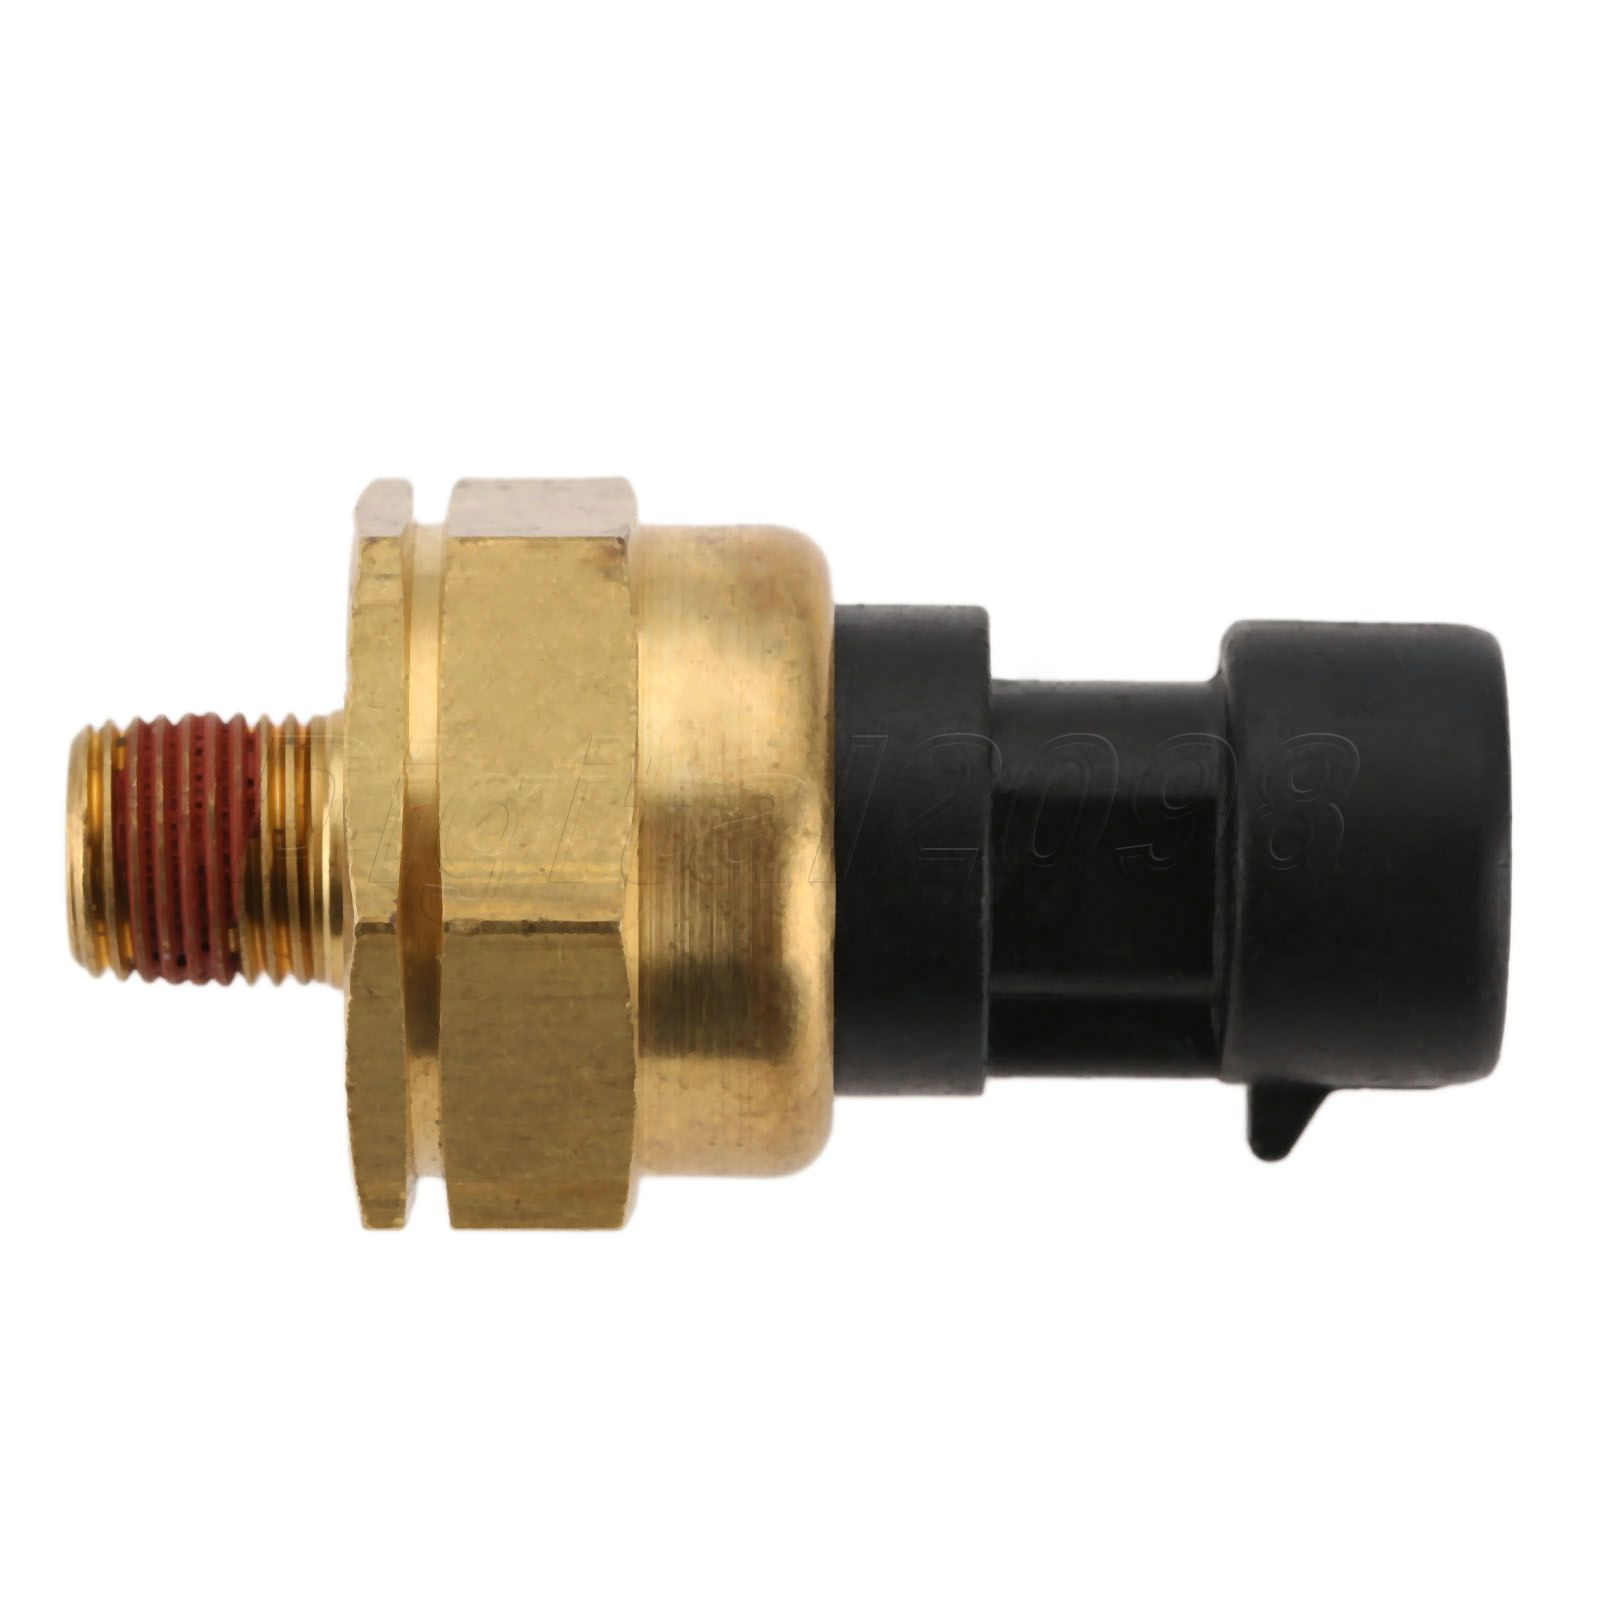 Yetaha High Quality 8M6000623 Case For Mercruiser OEM Water Pressure Sender Sensor Switch Genuine Fast Delivery Free Shipping